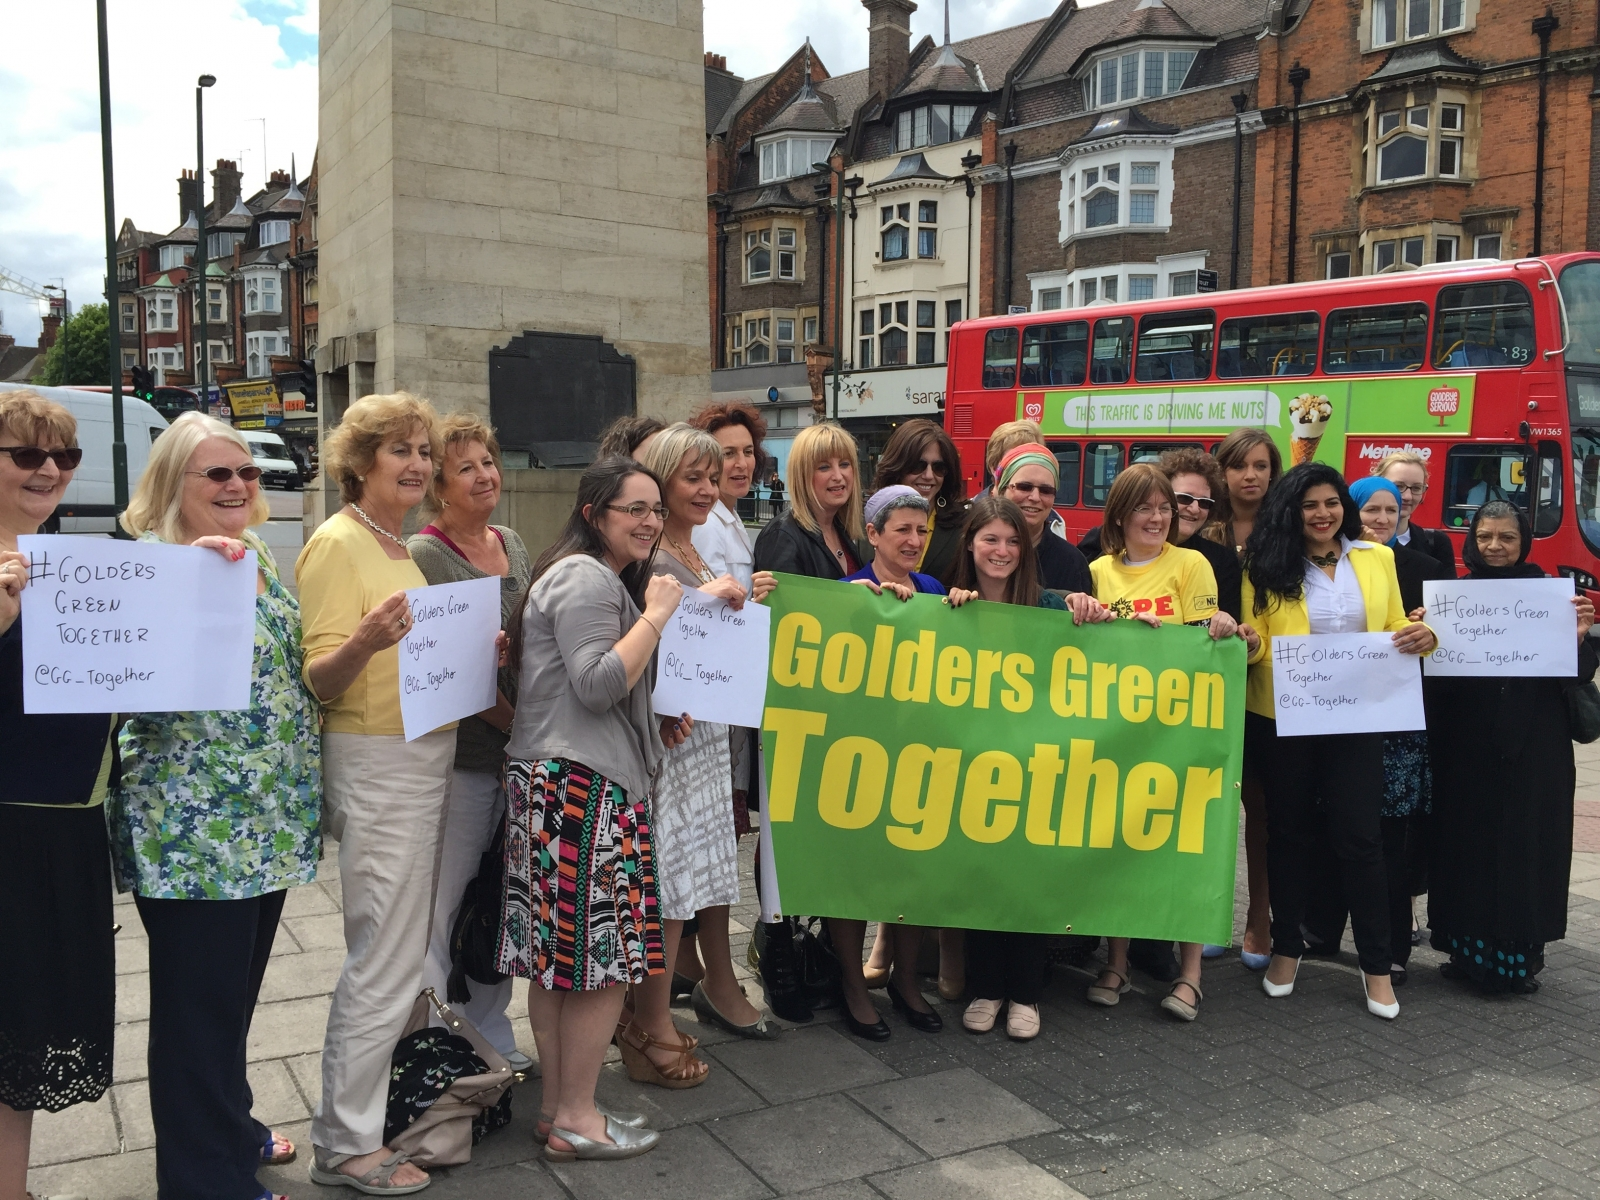 Golders Green Together against Neo-Nazis